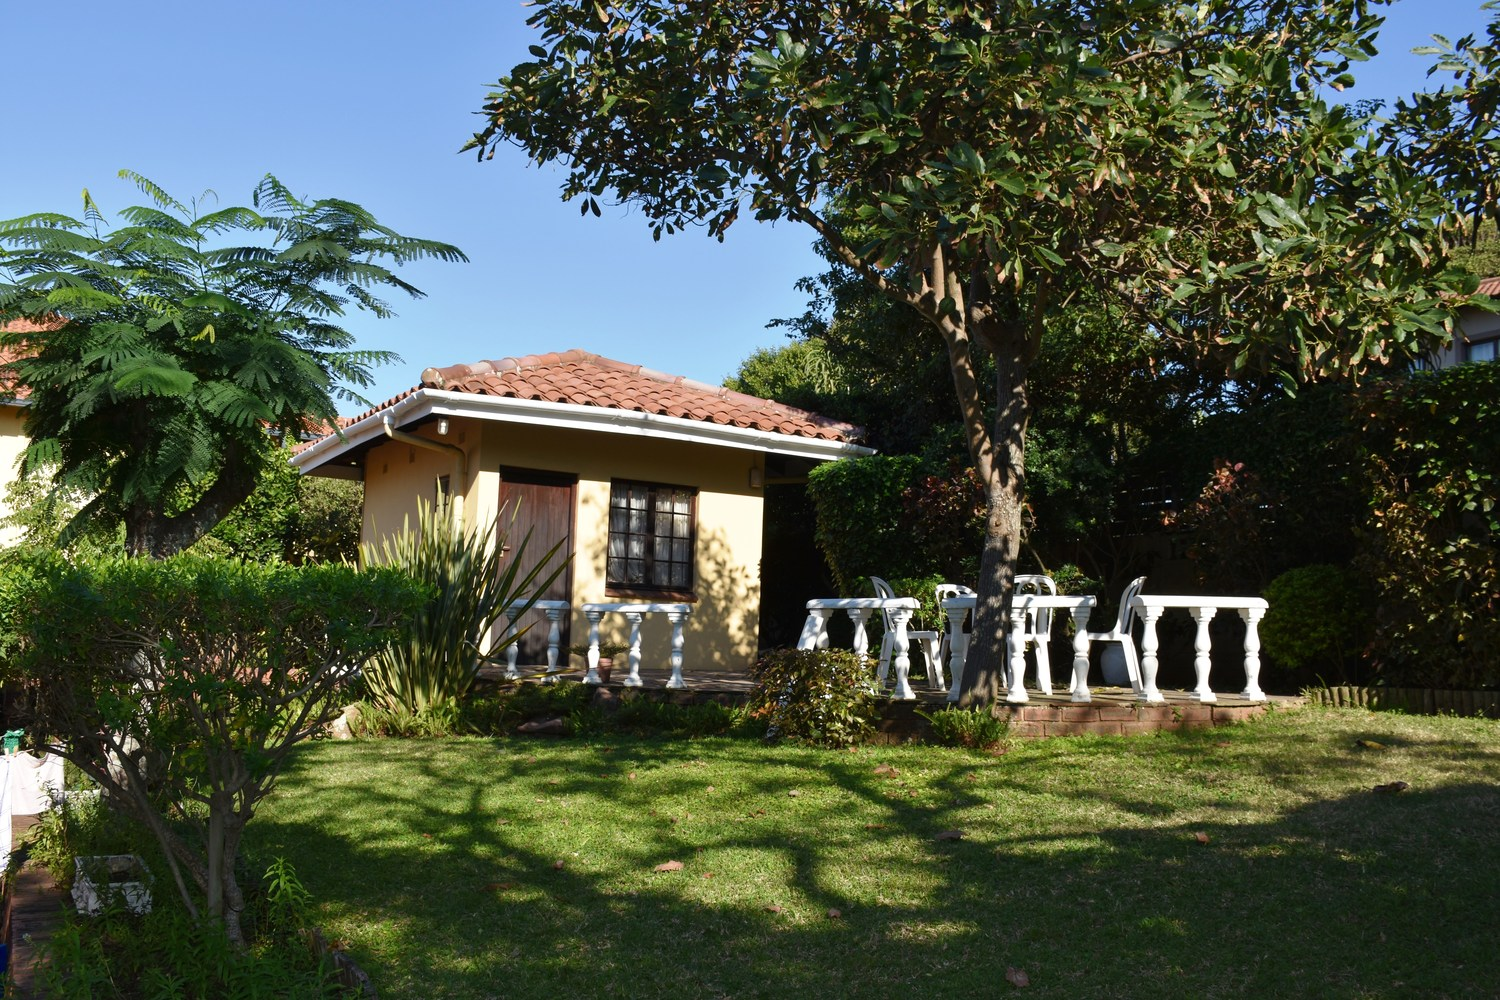 4 Bedroom House for sale in Umhlanga Rocks ENT0031522 : photo#4